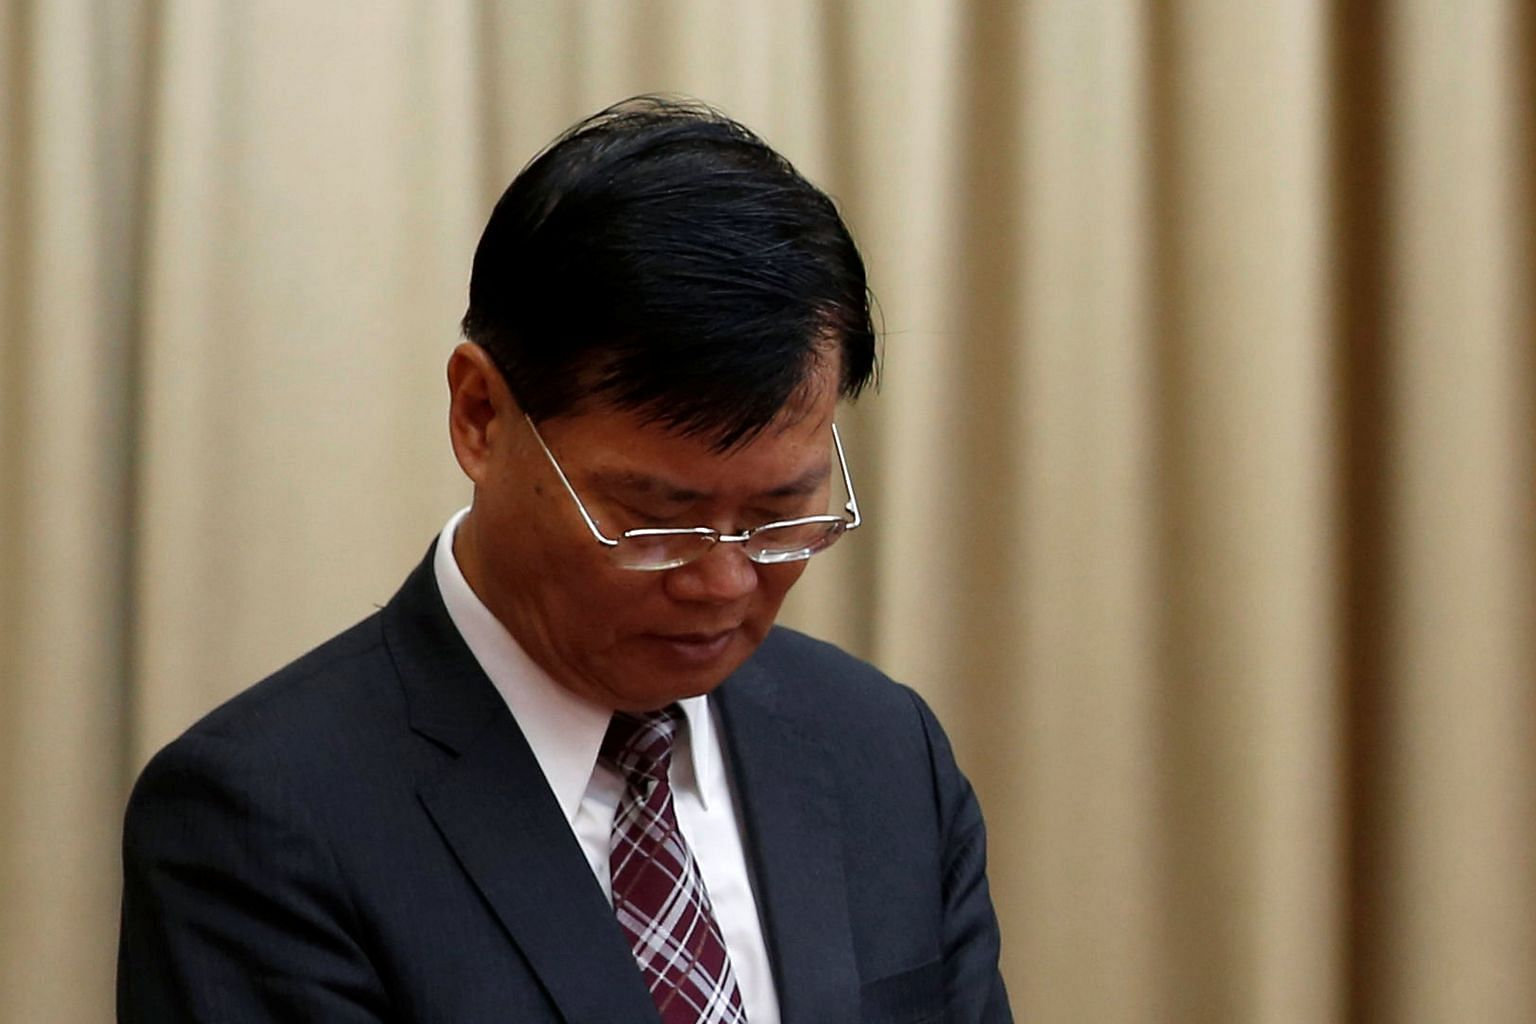 Mr Ding says he resigned to maintain his innocence and end damage to the financial watchdog.